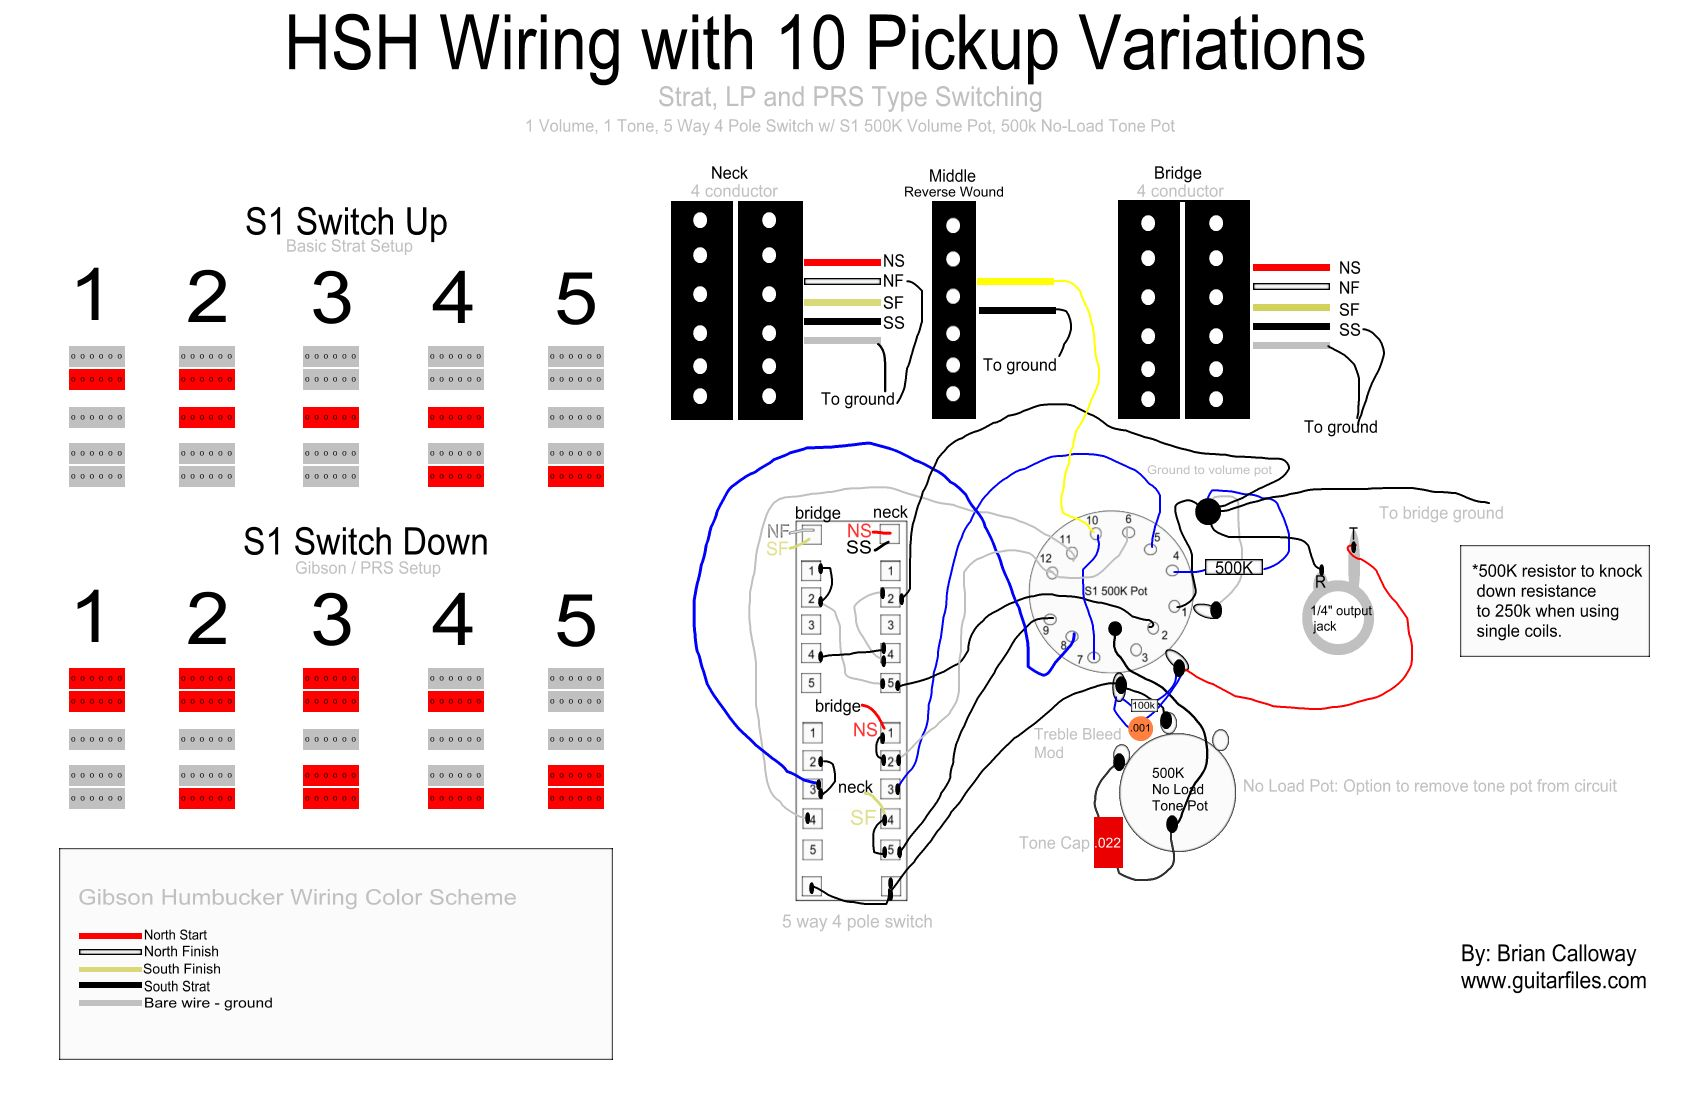 gilmour stratocaster wiring diagram hsh stratocaster wiring diagram hsh guitar wiring - 10 pickup combinations. 4 pole switch ...